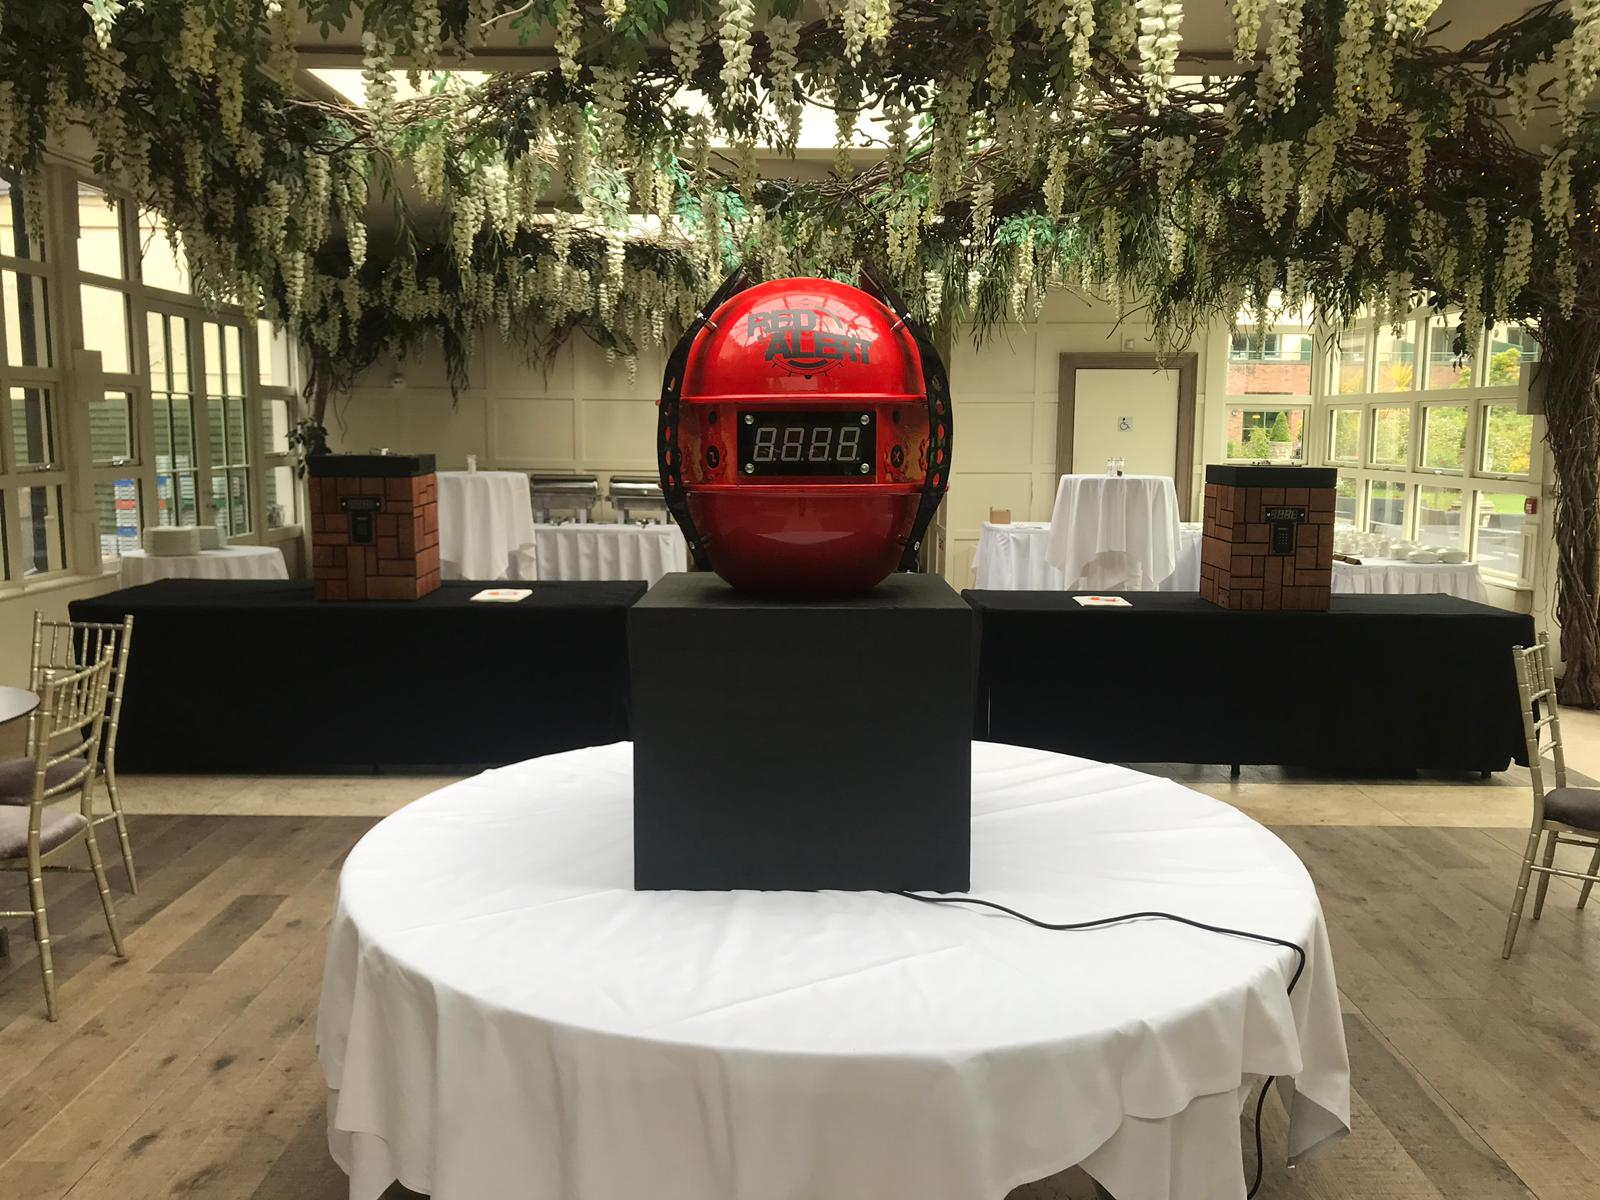 The Red Alert Sphere sitting on a table, ready to be played by a team as part of their team bonding away day.